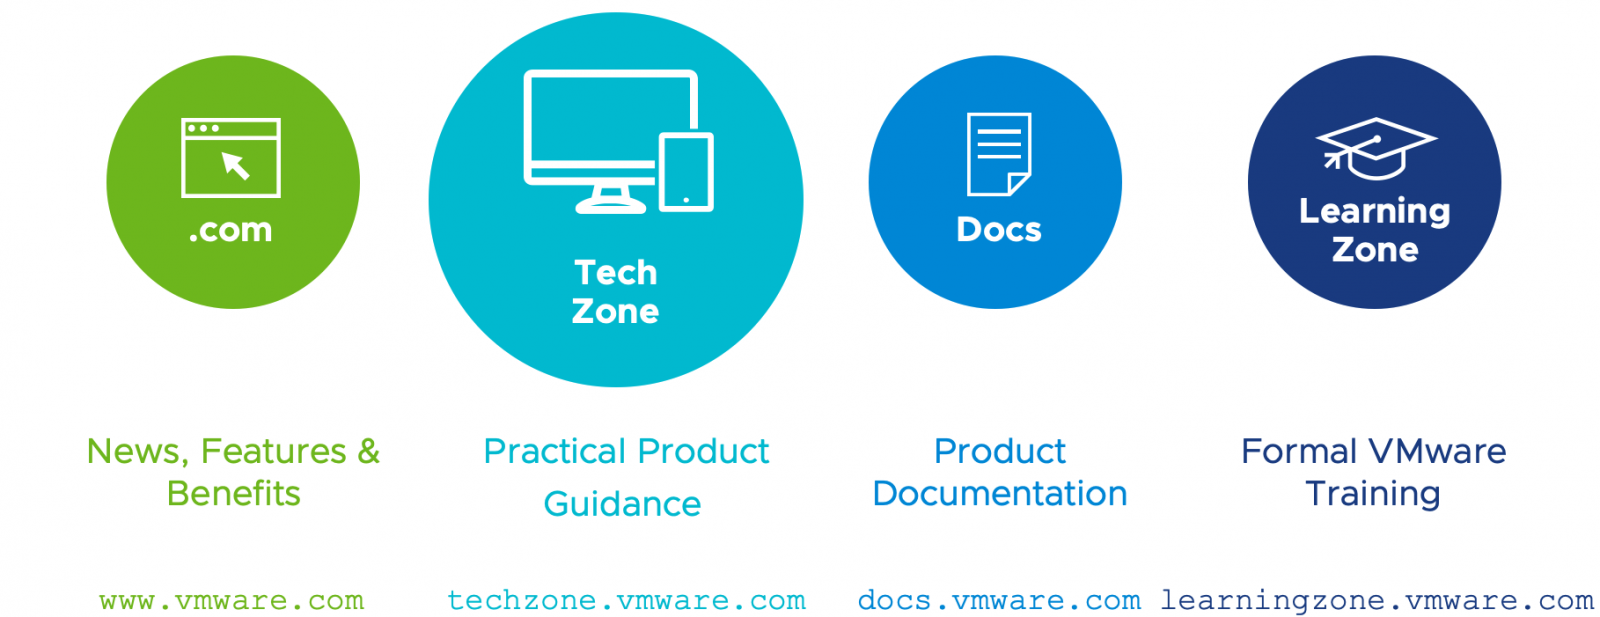 How VMware TechZone fits in with other VMware EUC resources